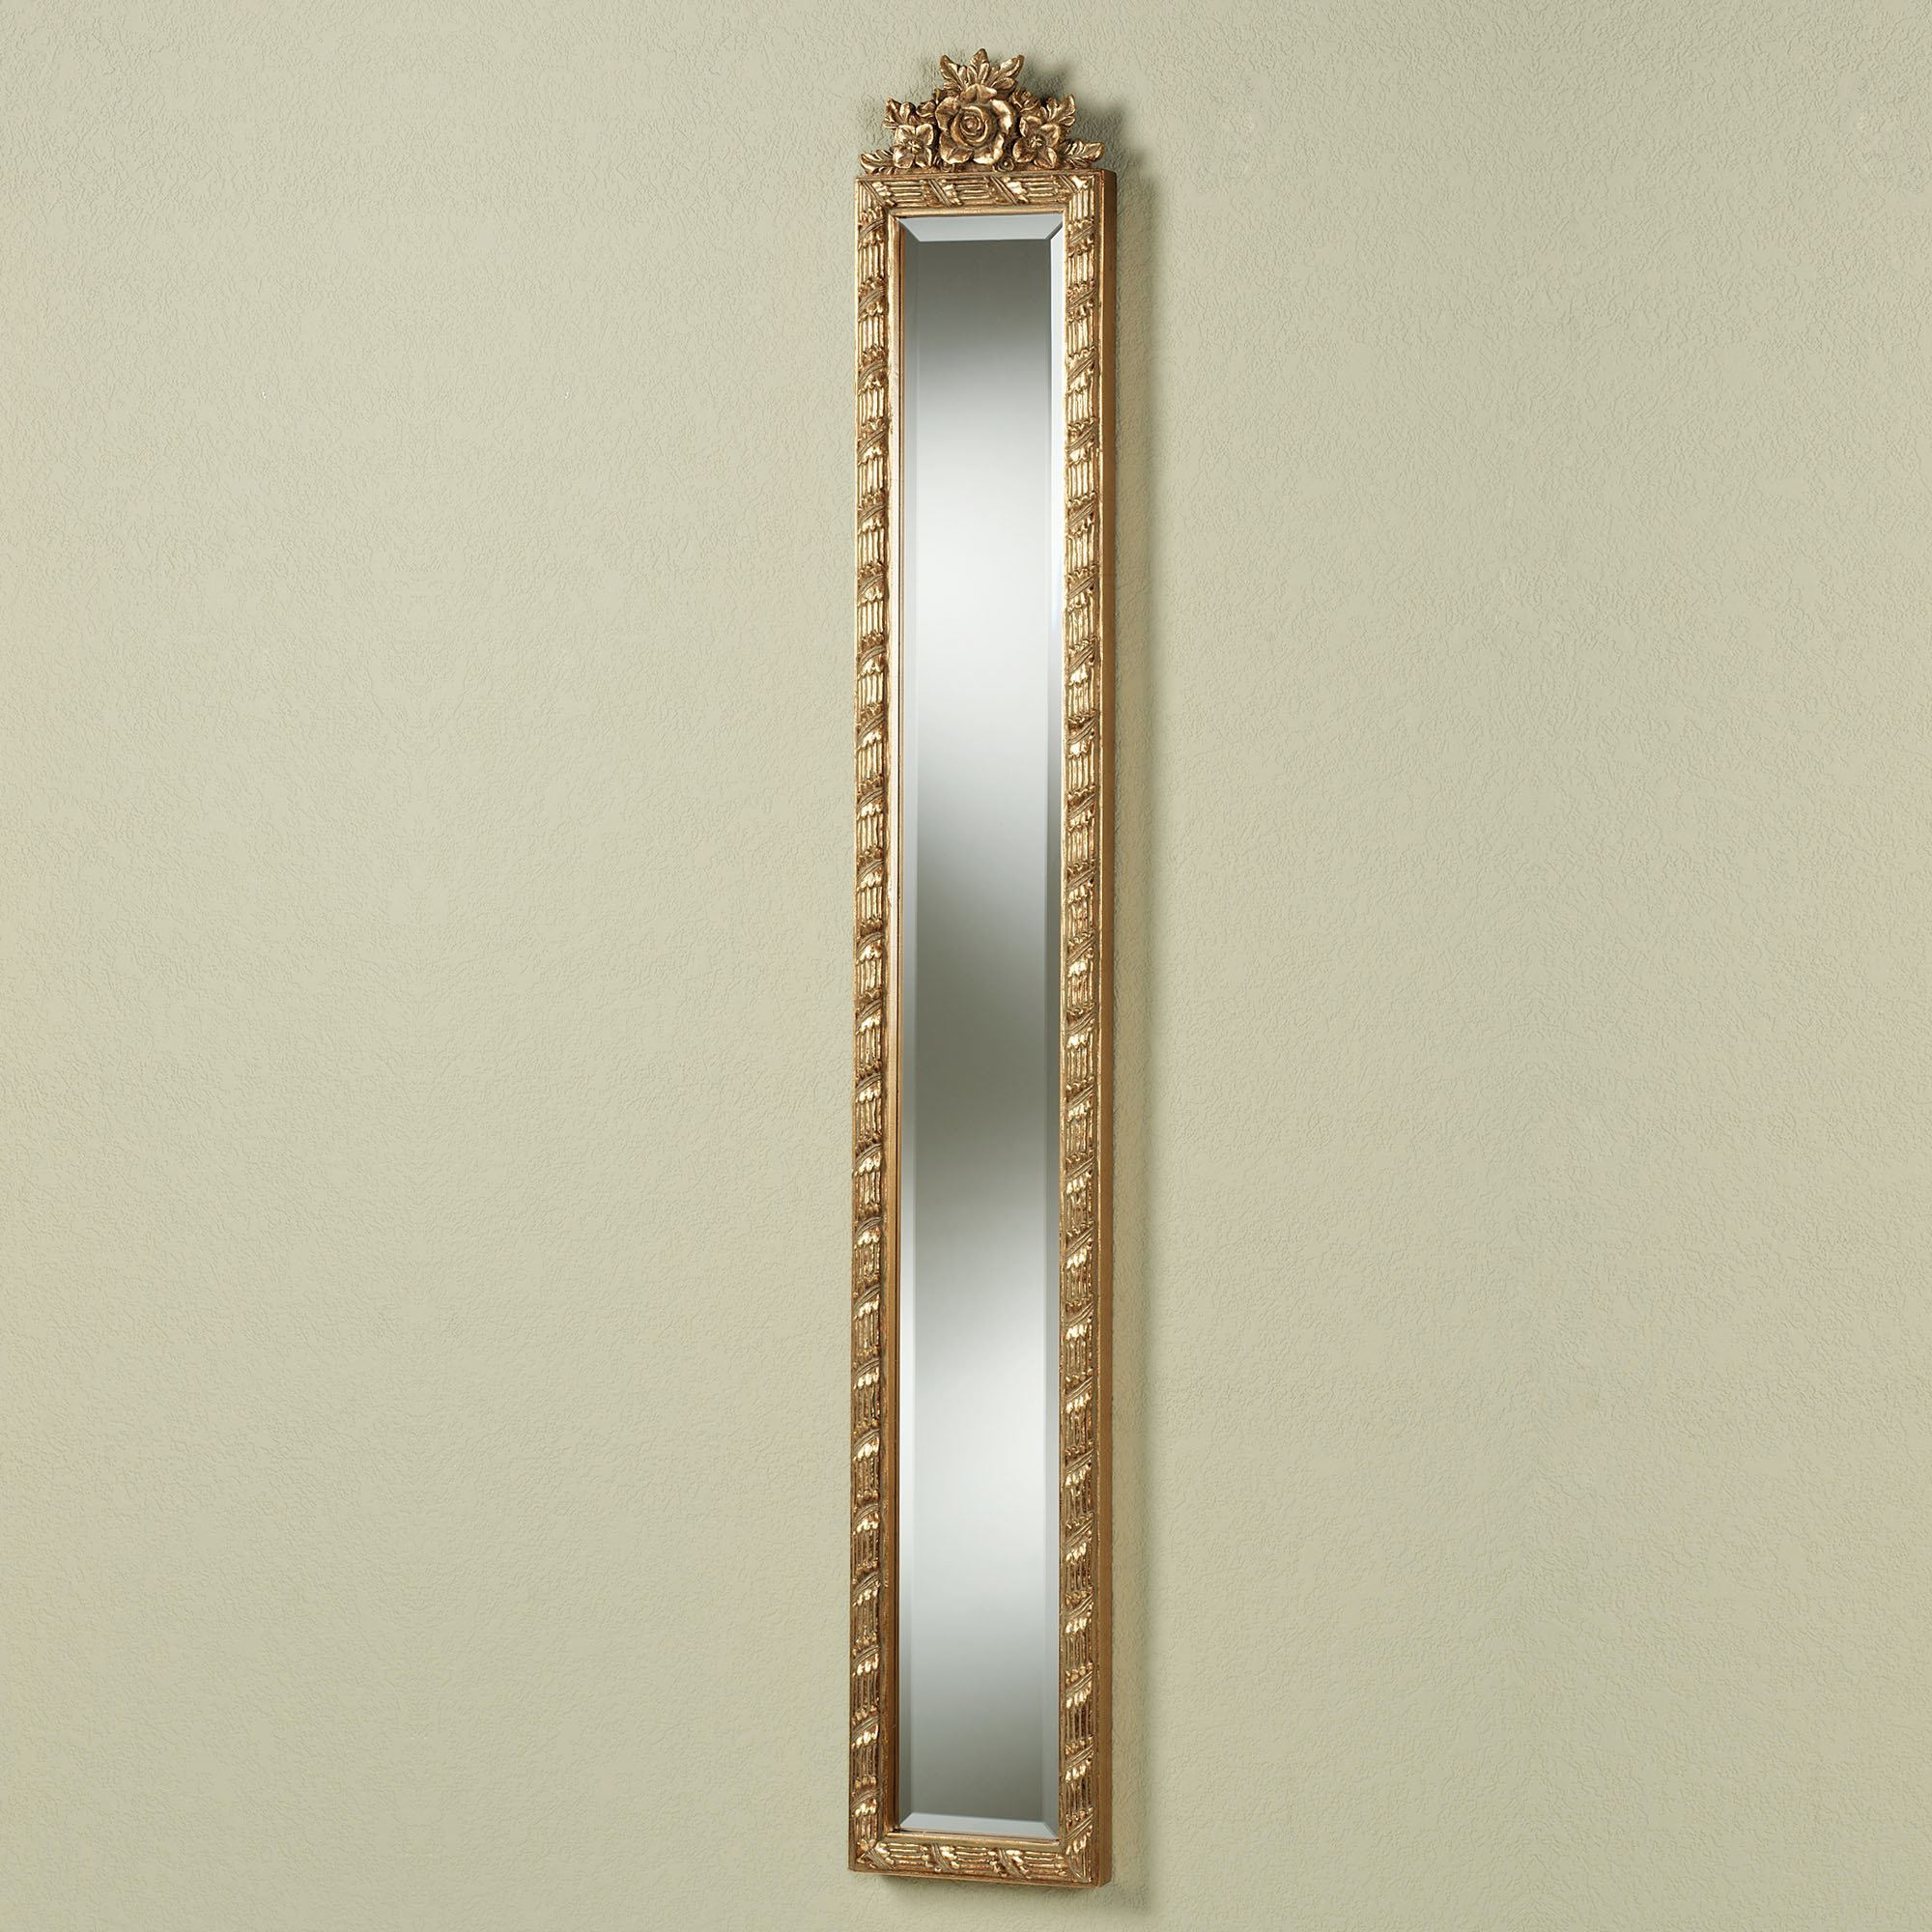 Long Narrow Wall Mirrors Intended For Best And Newest Giuliana Antique Gold Floral Wall Mirror Panel (View 2 of 20)